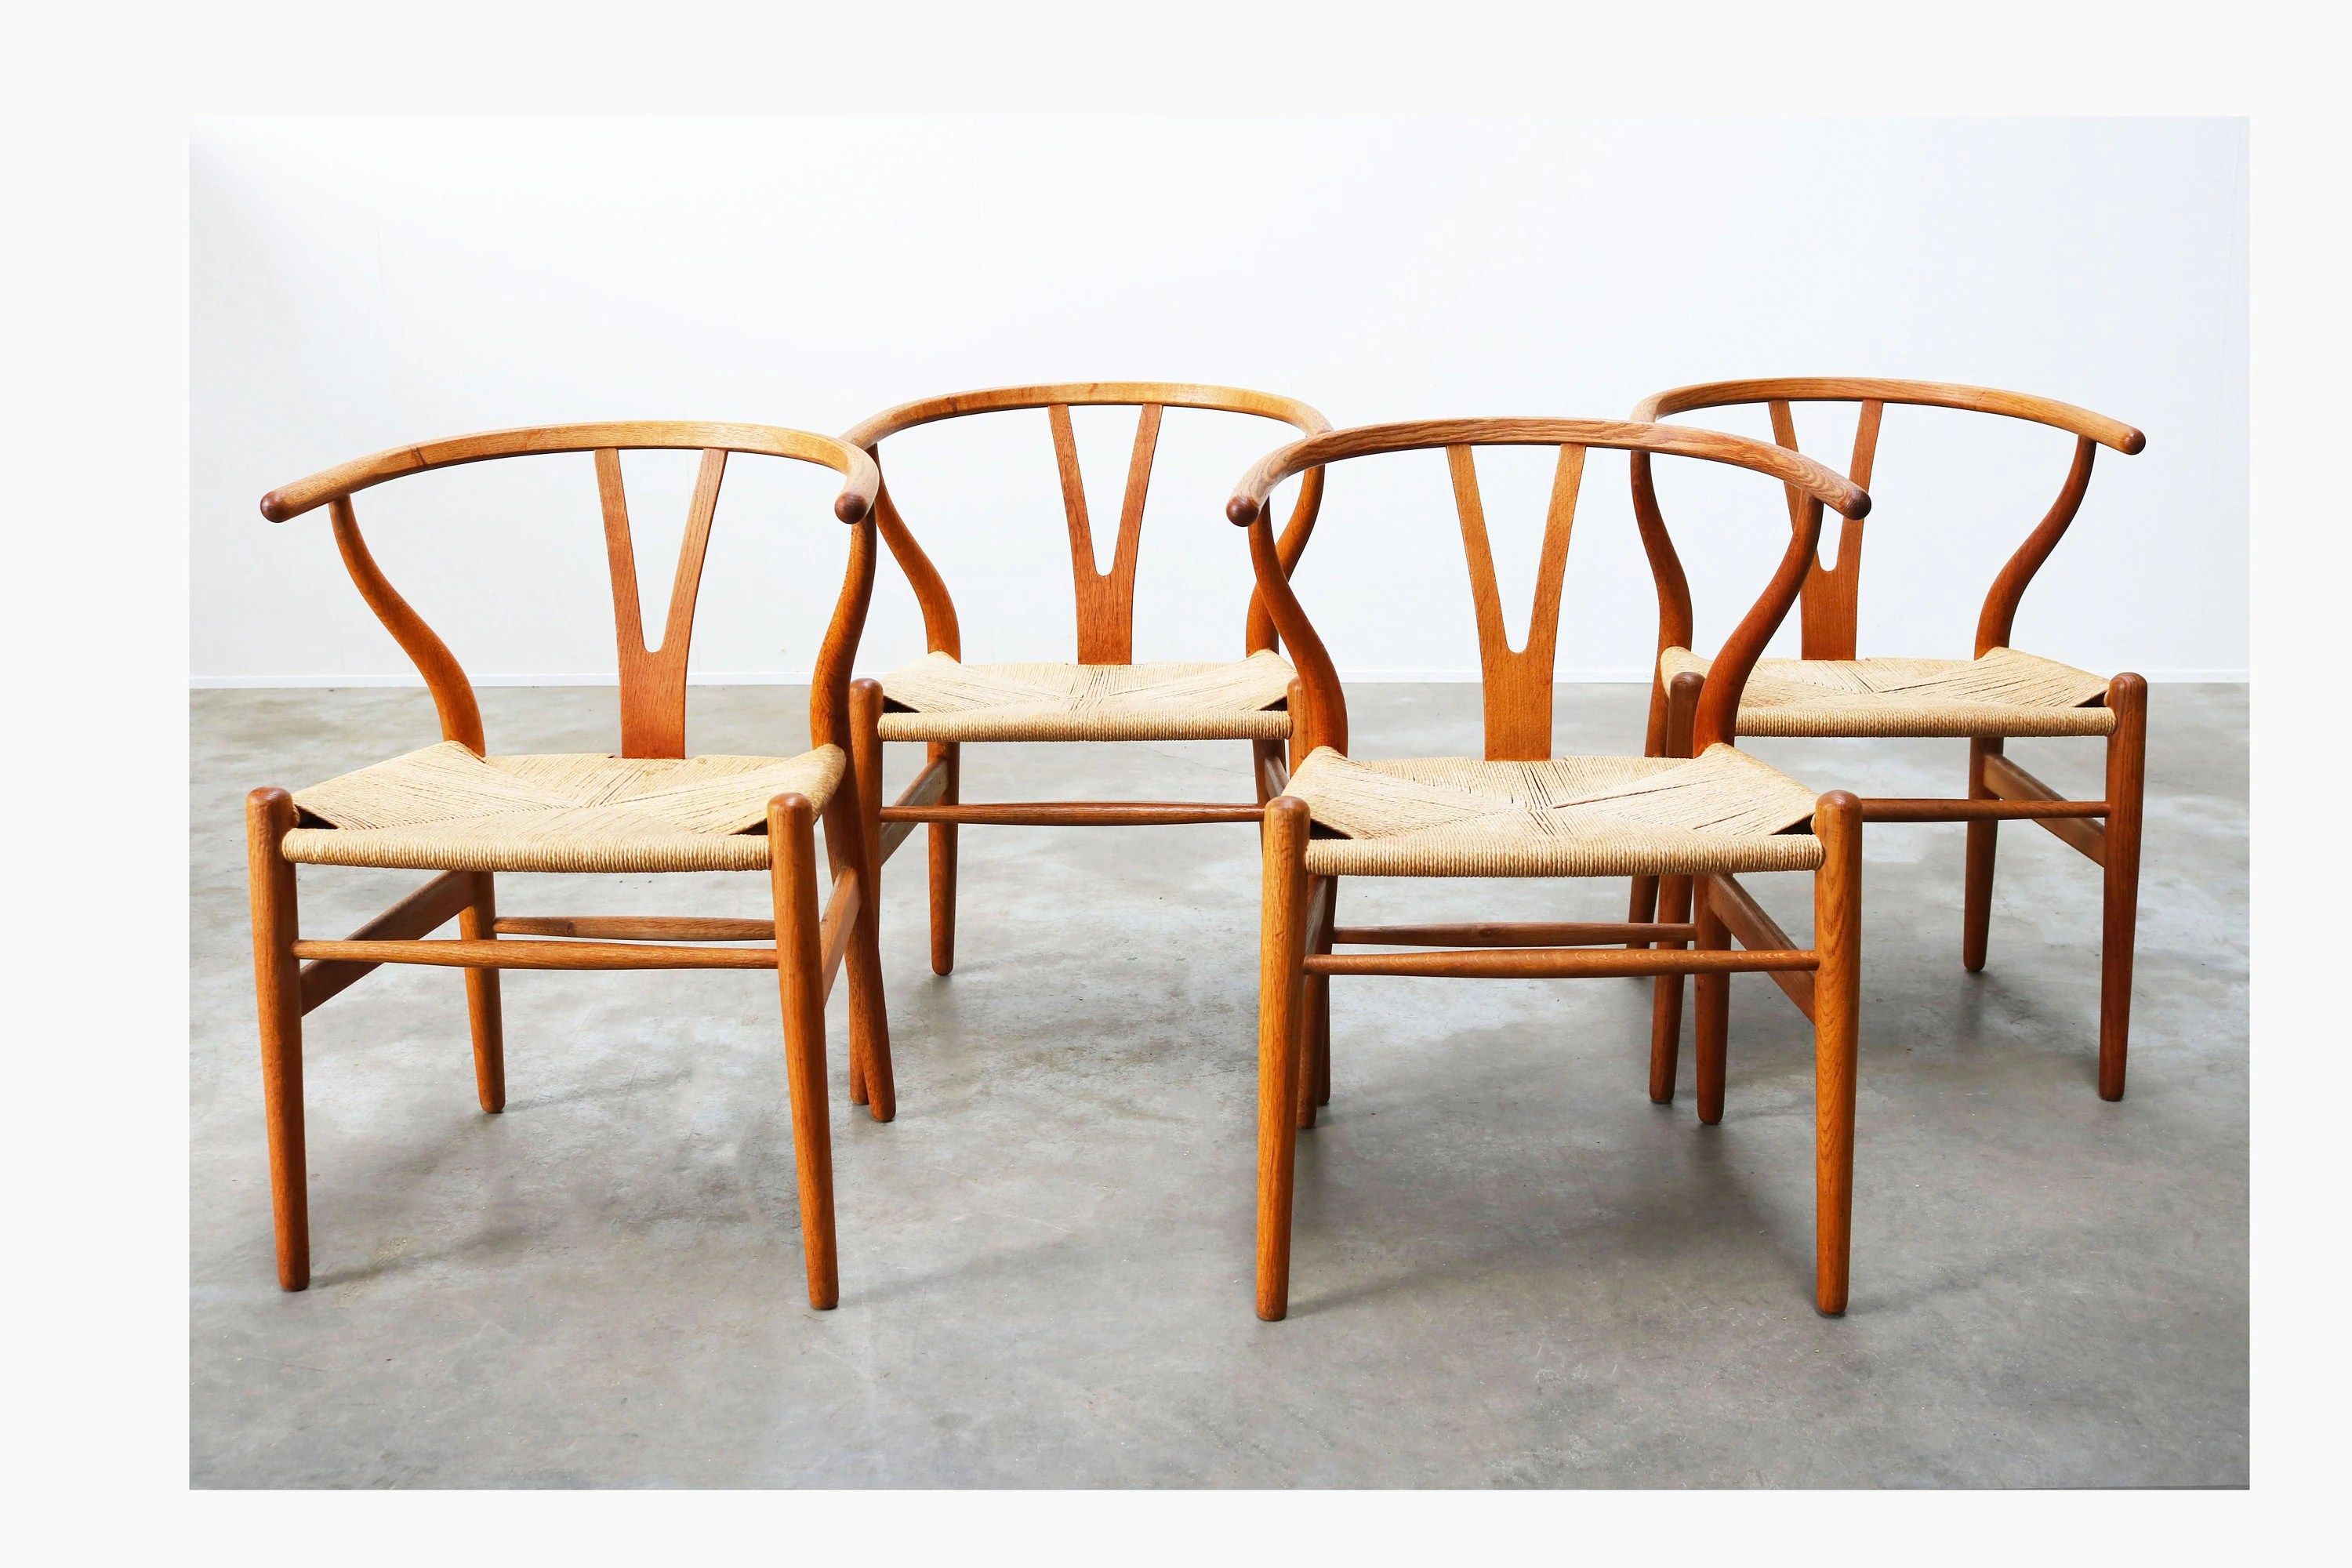 Wishbone Chairs Set Of Four Ch24 Wishbone Chairs By Hans J Wegner Oak Papercord Produced By Carl Hansen Son 1960s